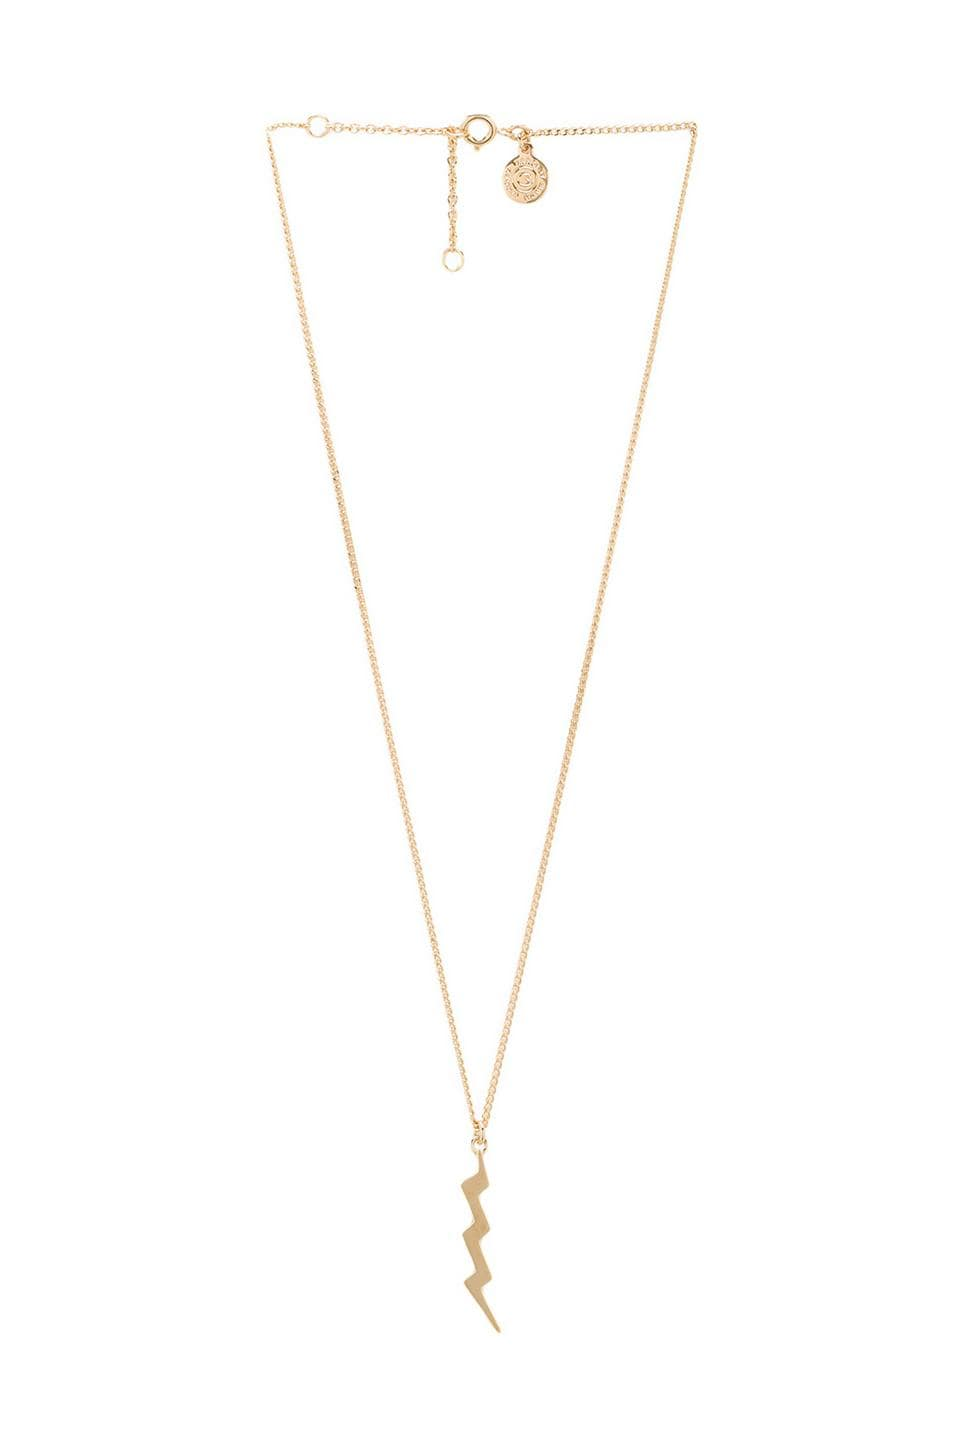 Marc by Marc Jacobs Lightning Bolt Necklace in Oro